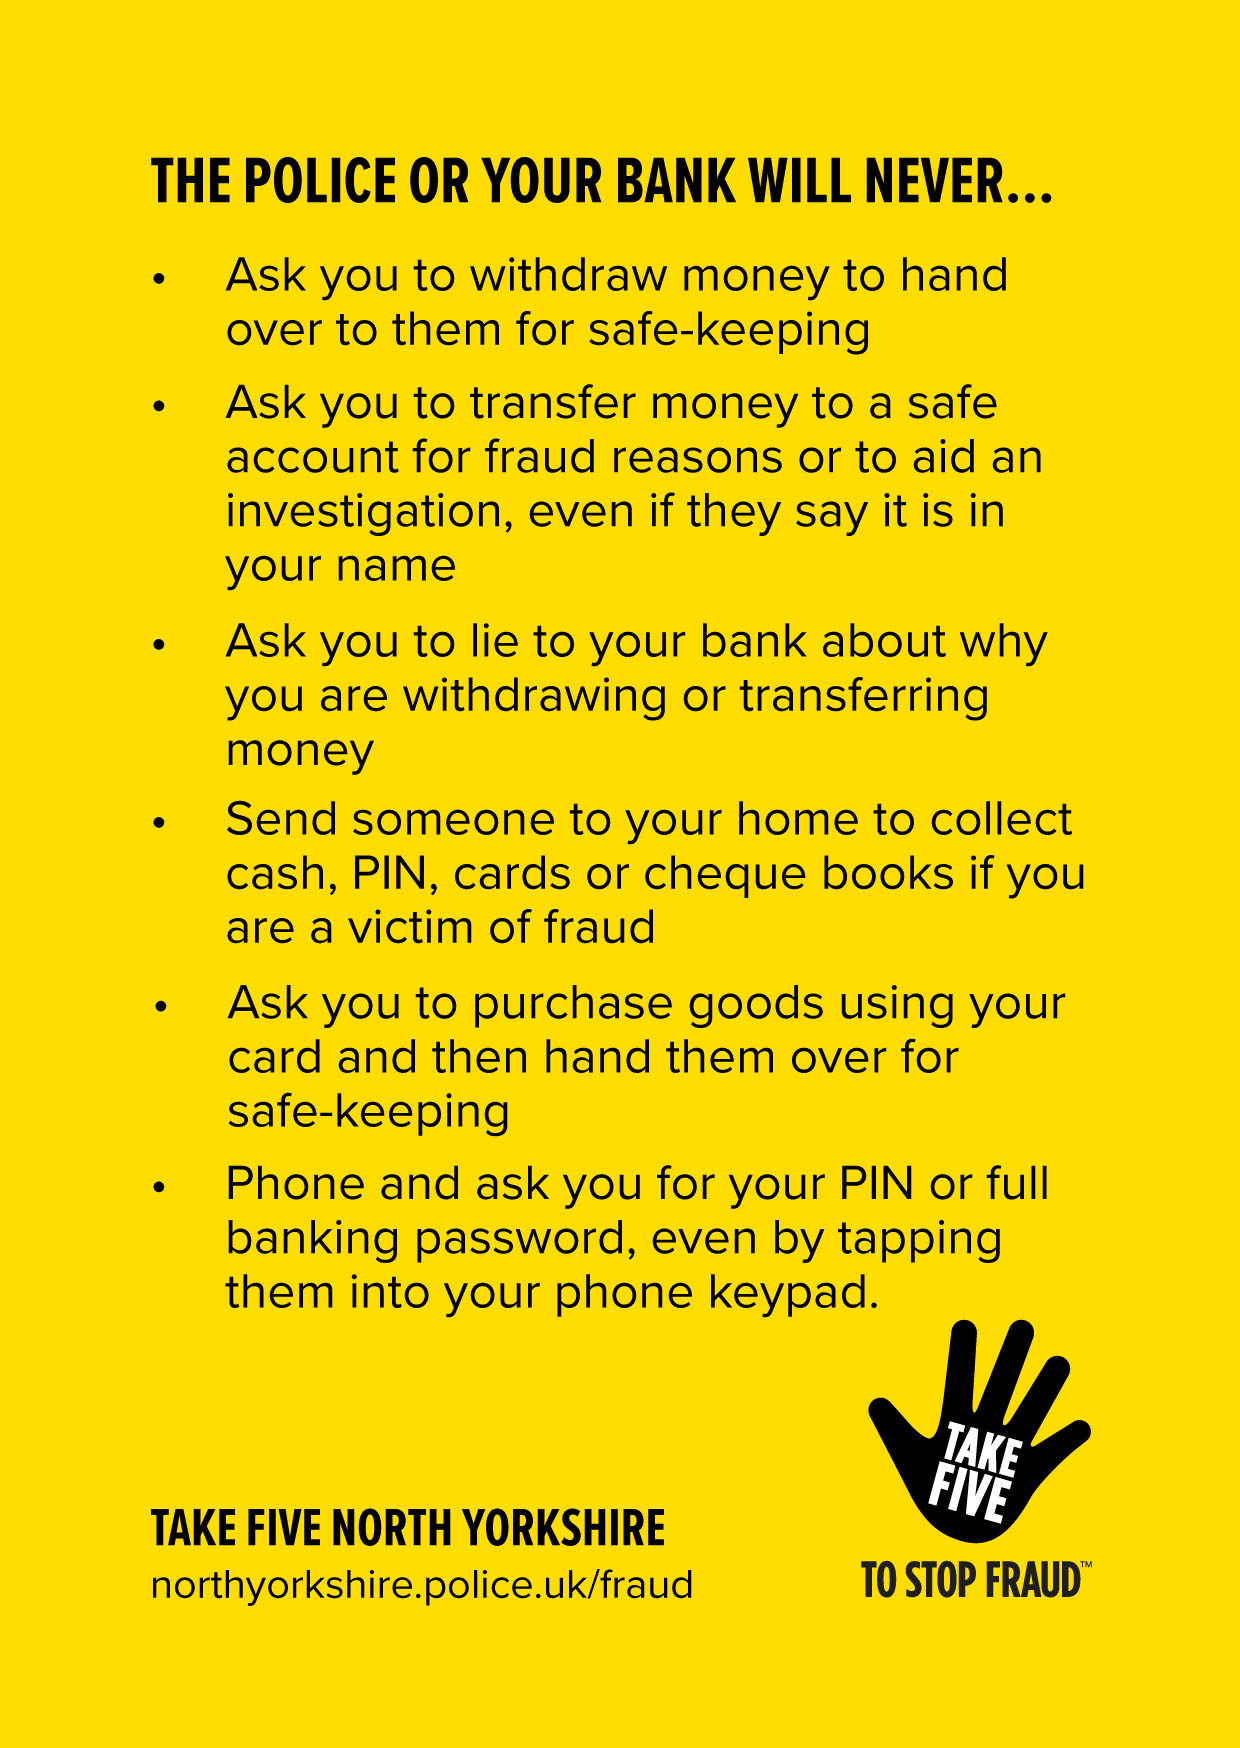 Take Five - The police or your bank will never